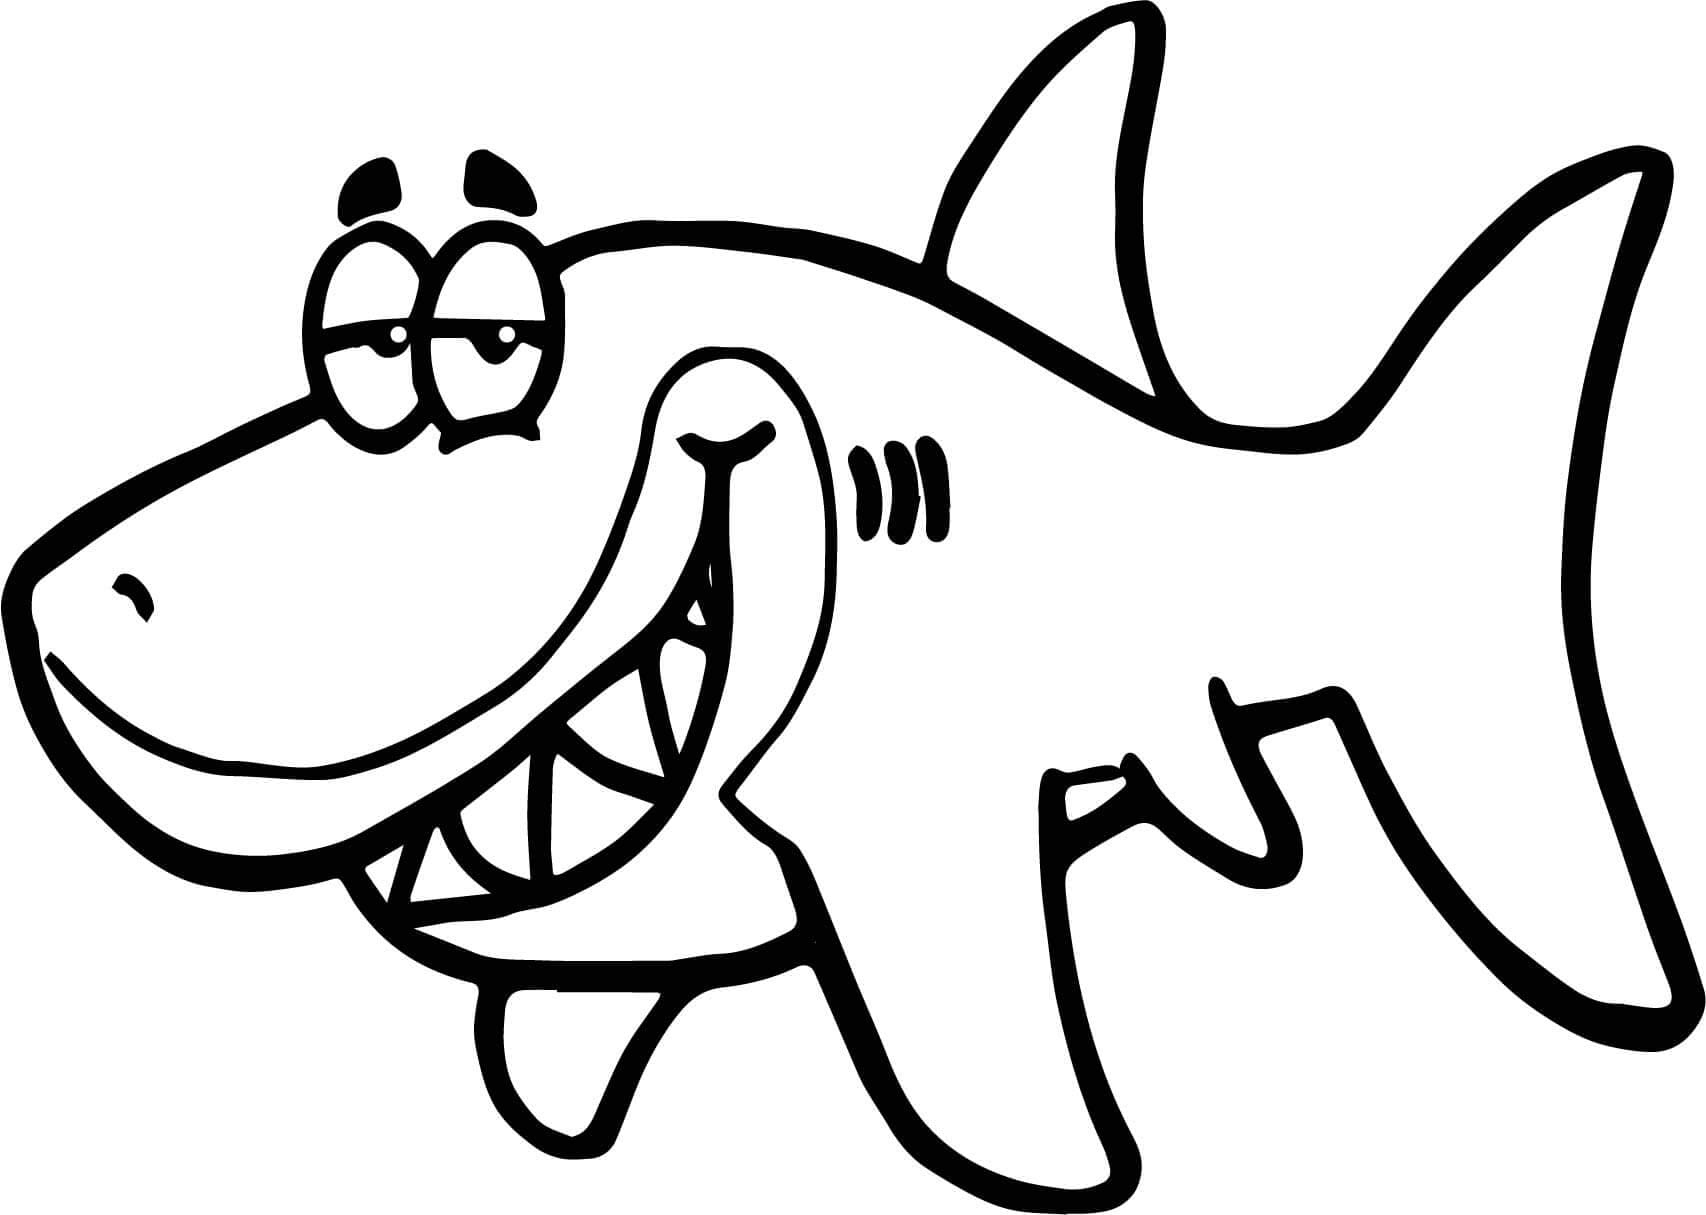 shark colouring picture free shark coloring pages shark picture colouring